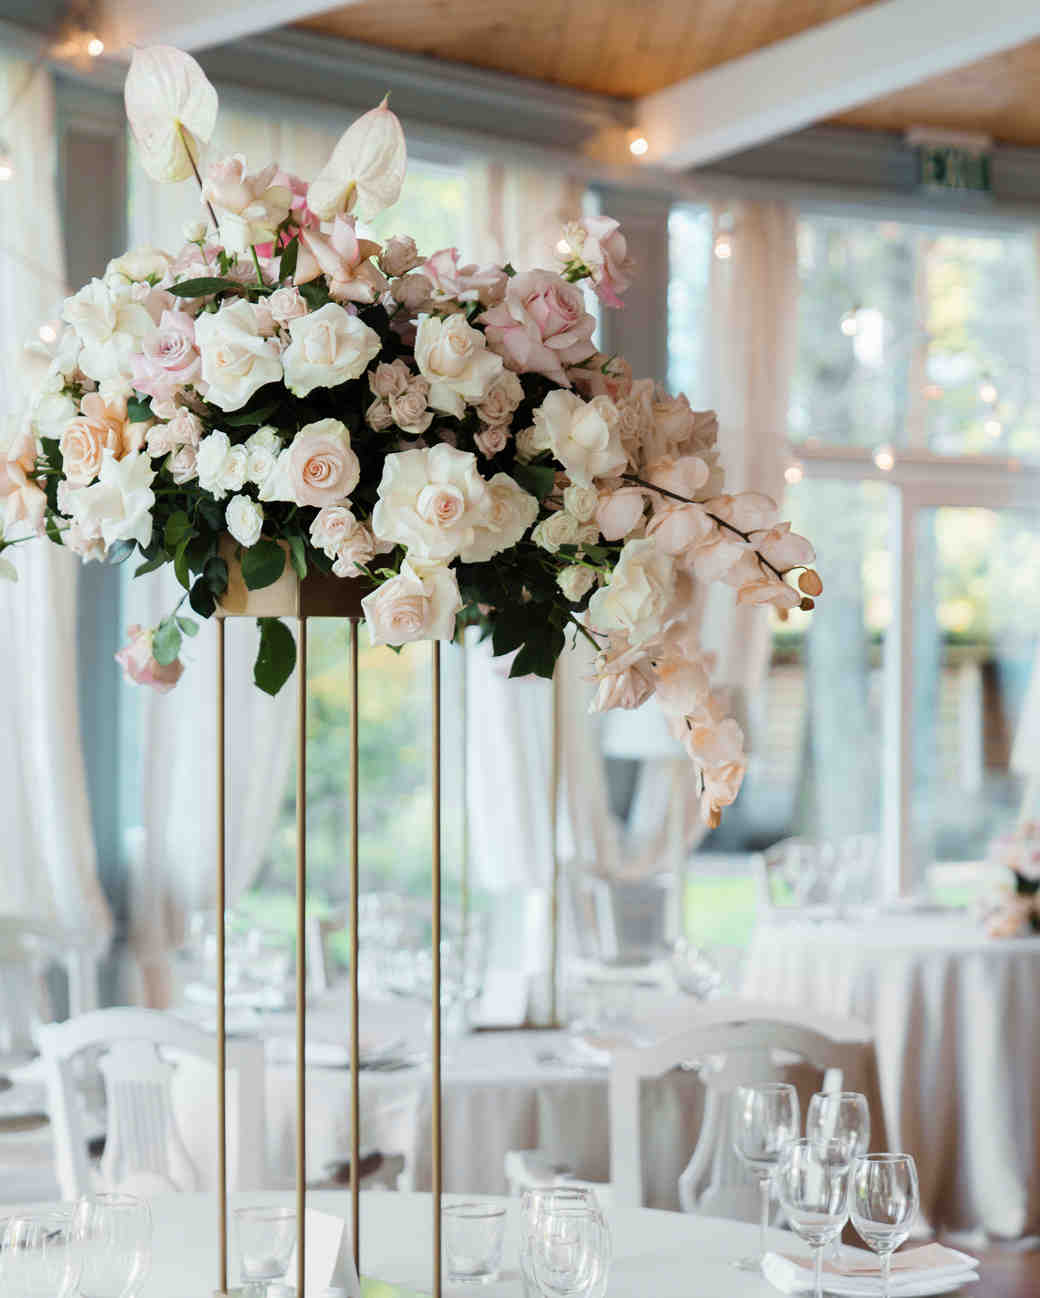 Tall Centerpiece With White Garden Roses: High Centerpiece Wedding Rings At Websimilar.org